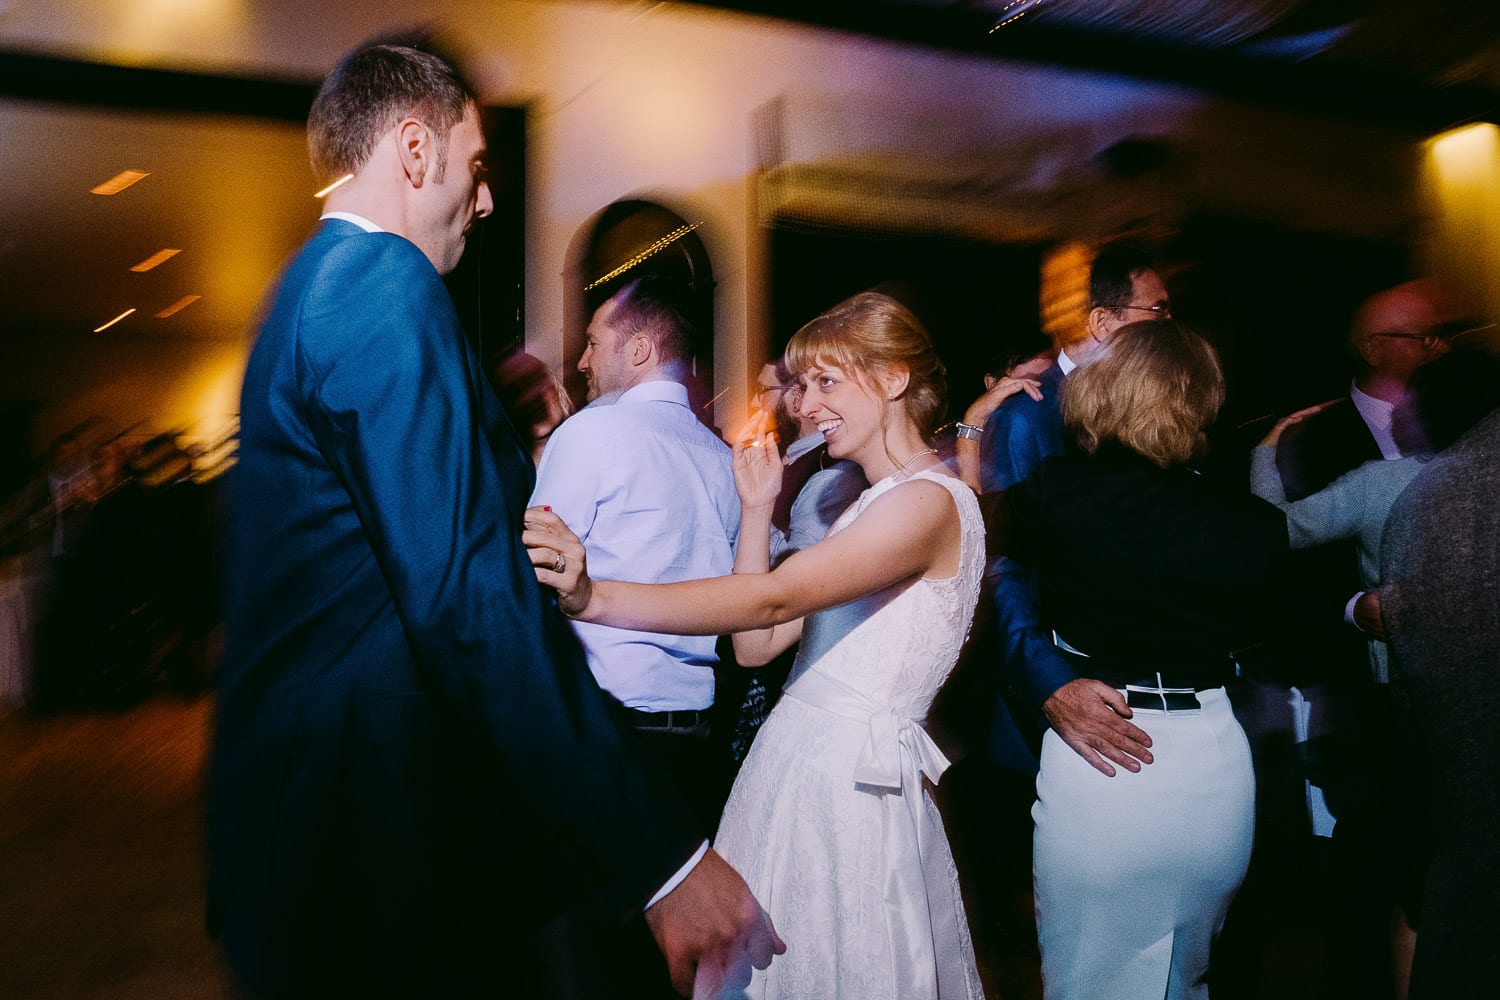 THe bride and groom dancing